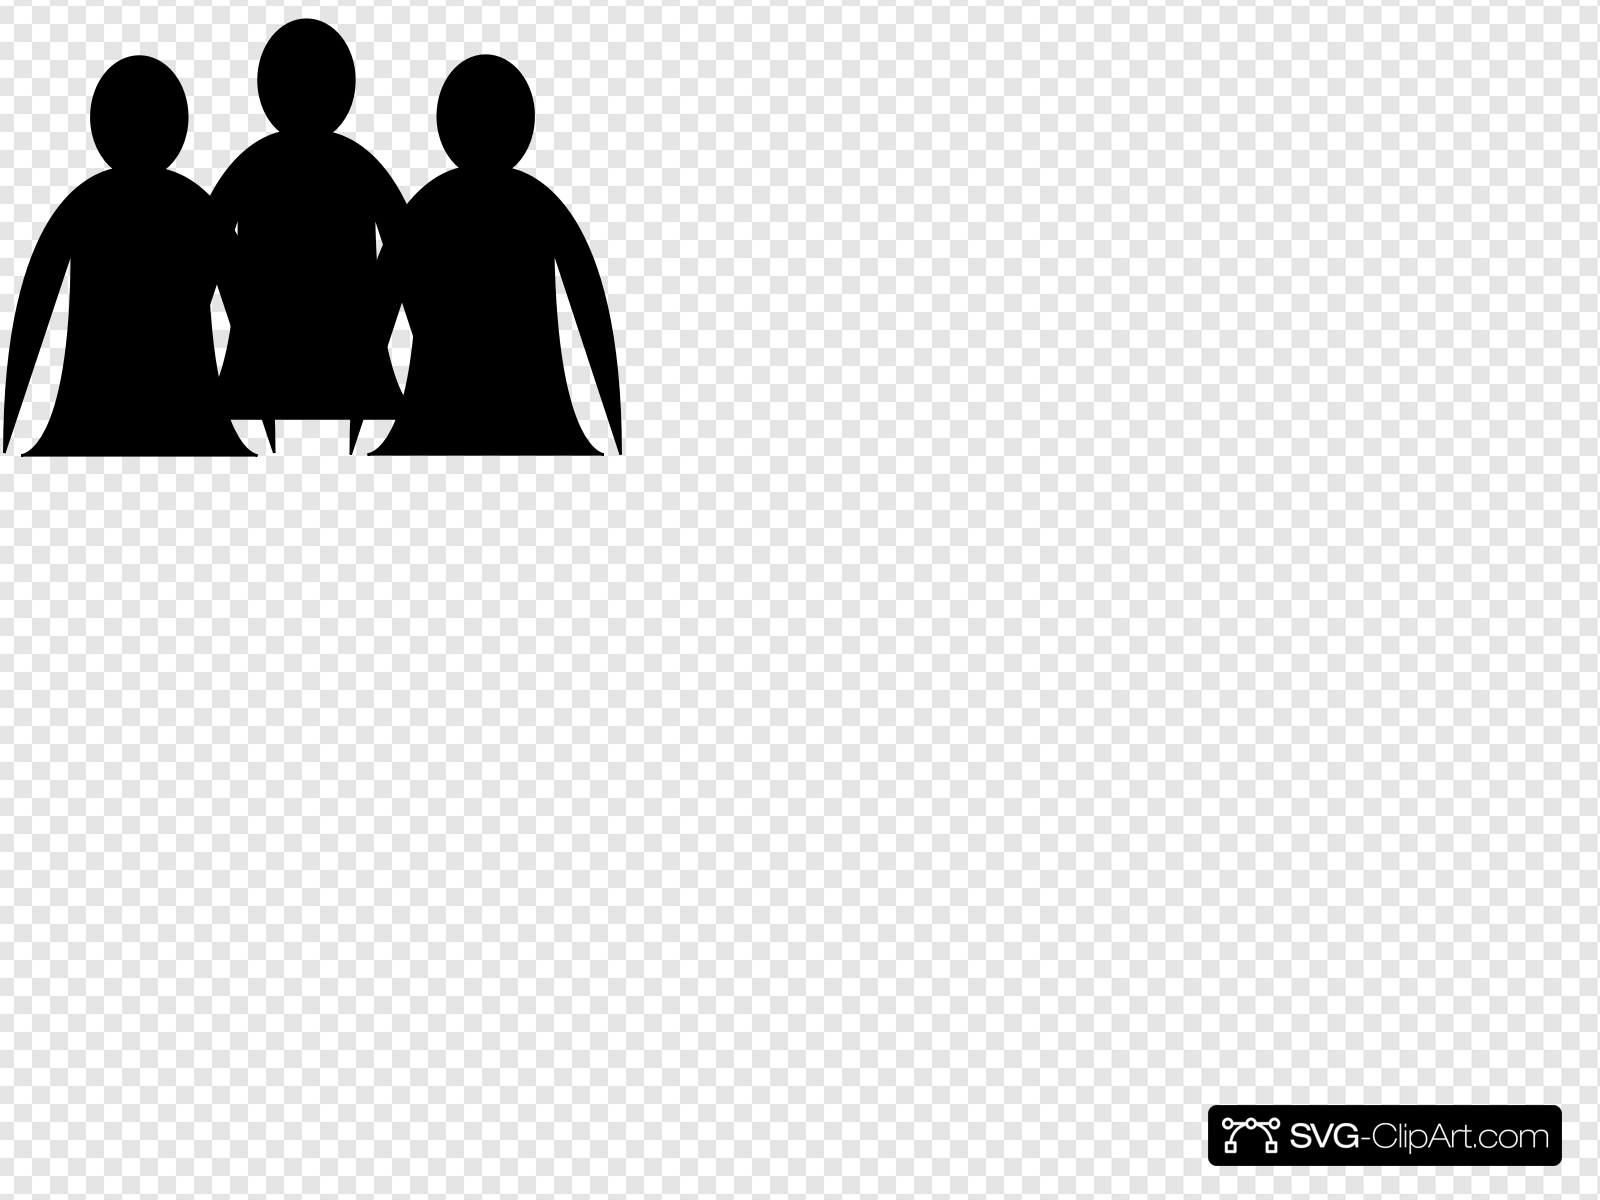 Abstract People Clip art, Icon and SVG.